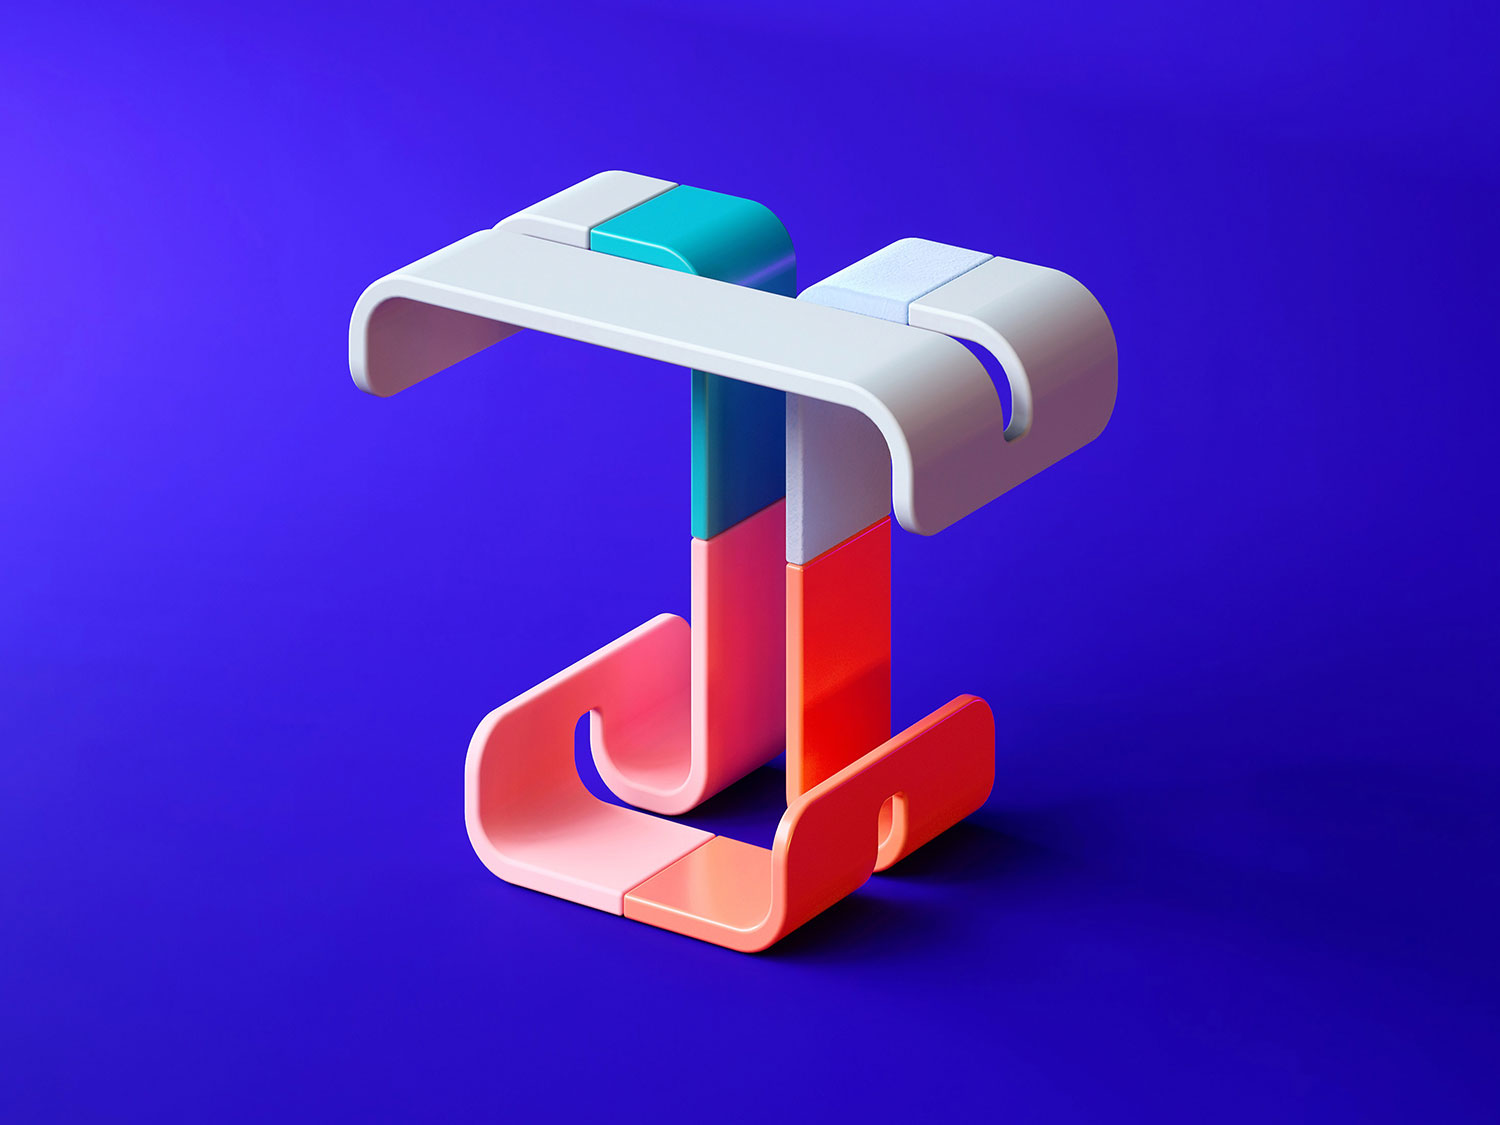 36 Days of Type 2018 - 3D letter T visual.